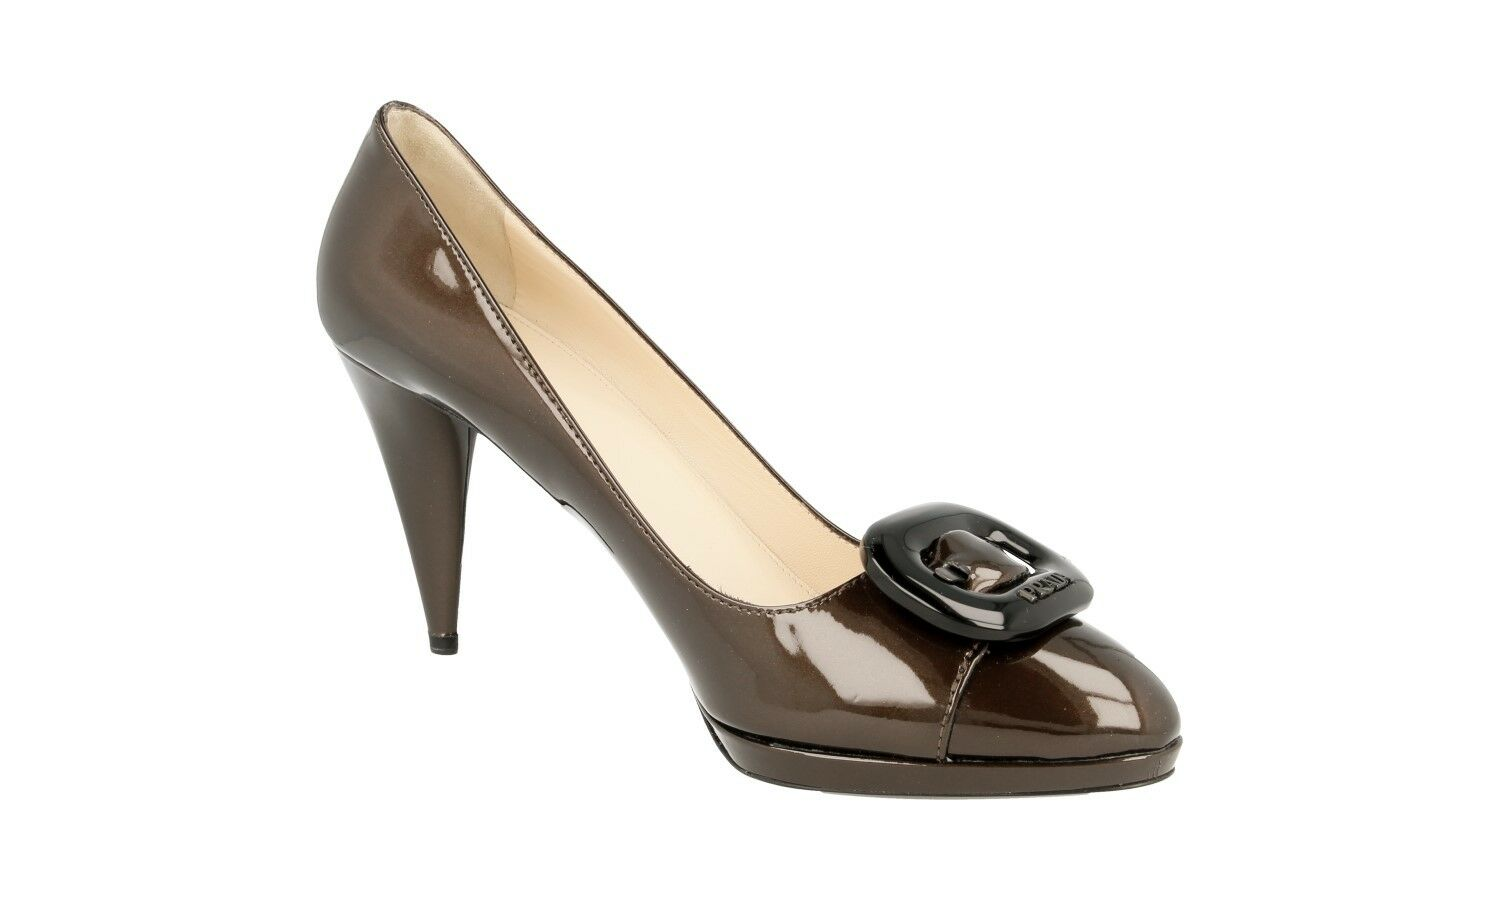 AUTHENTIC AUTHENTIC AUTHENTIC LUXURY PRADA PUMPS chaussures 1P813A CACAO NEW US 10.5 EU 40,5 41 UK 7.5 c913fb